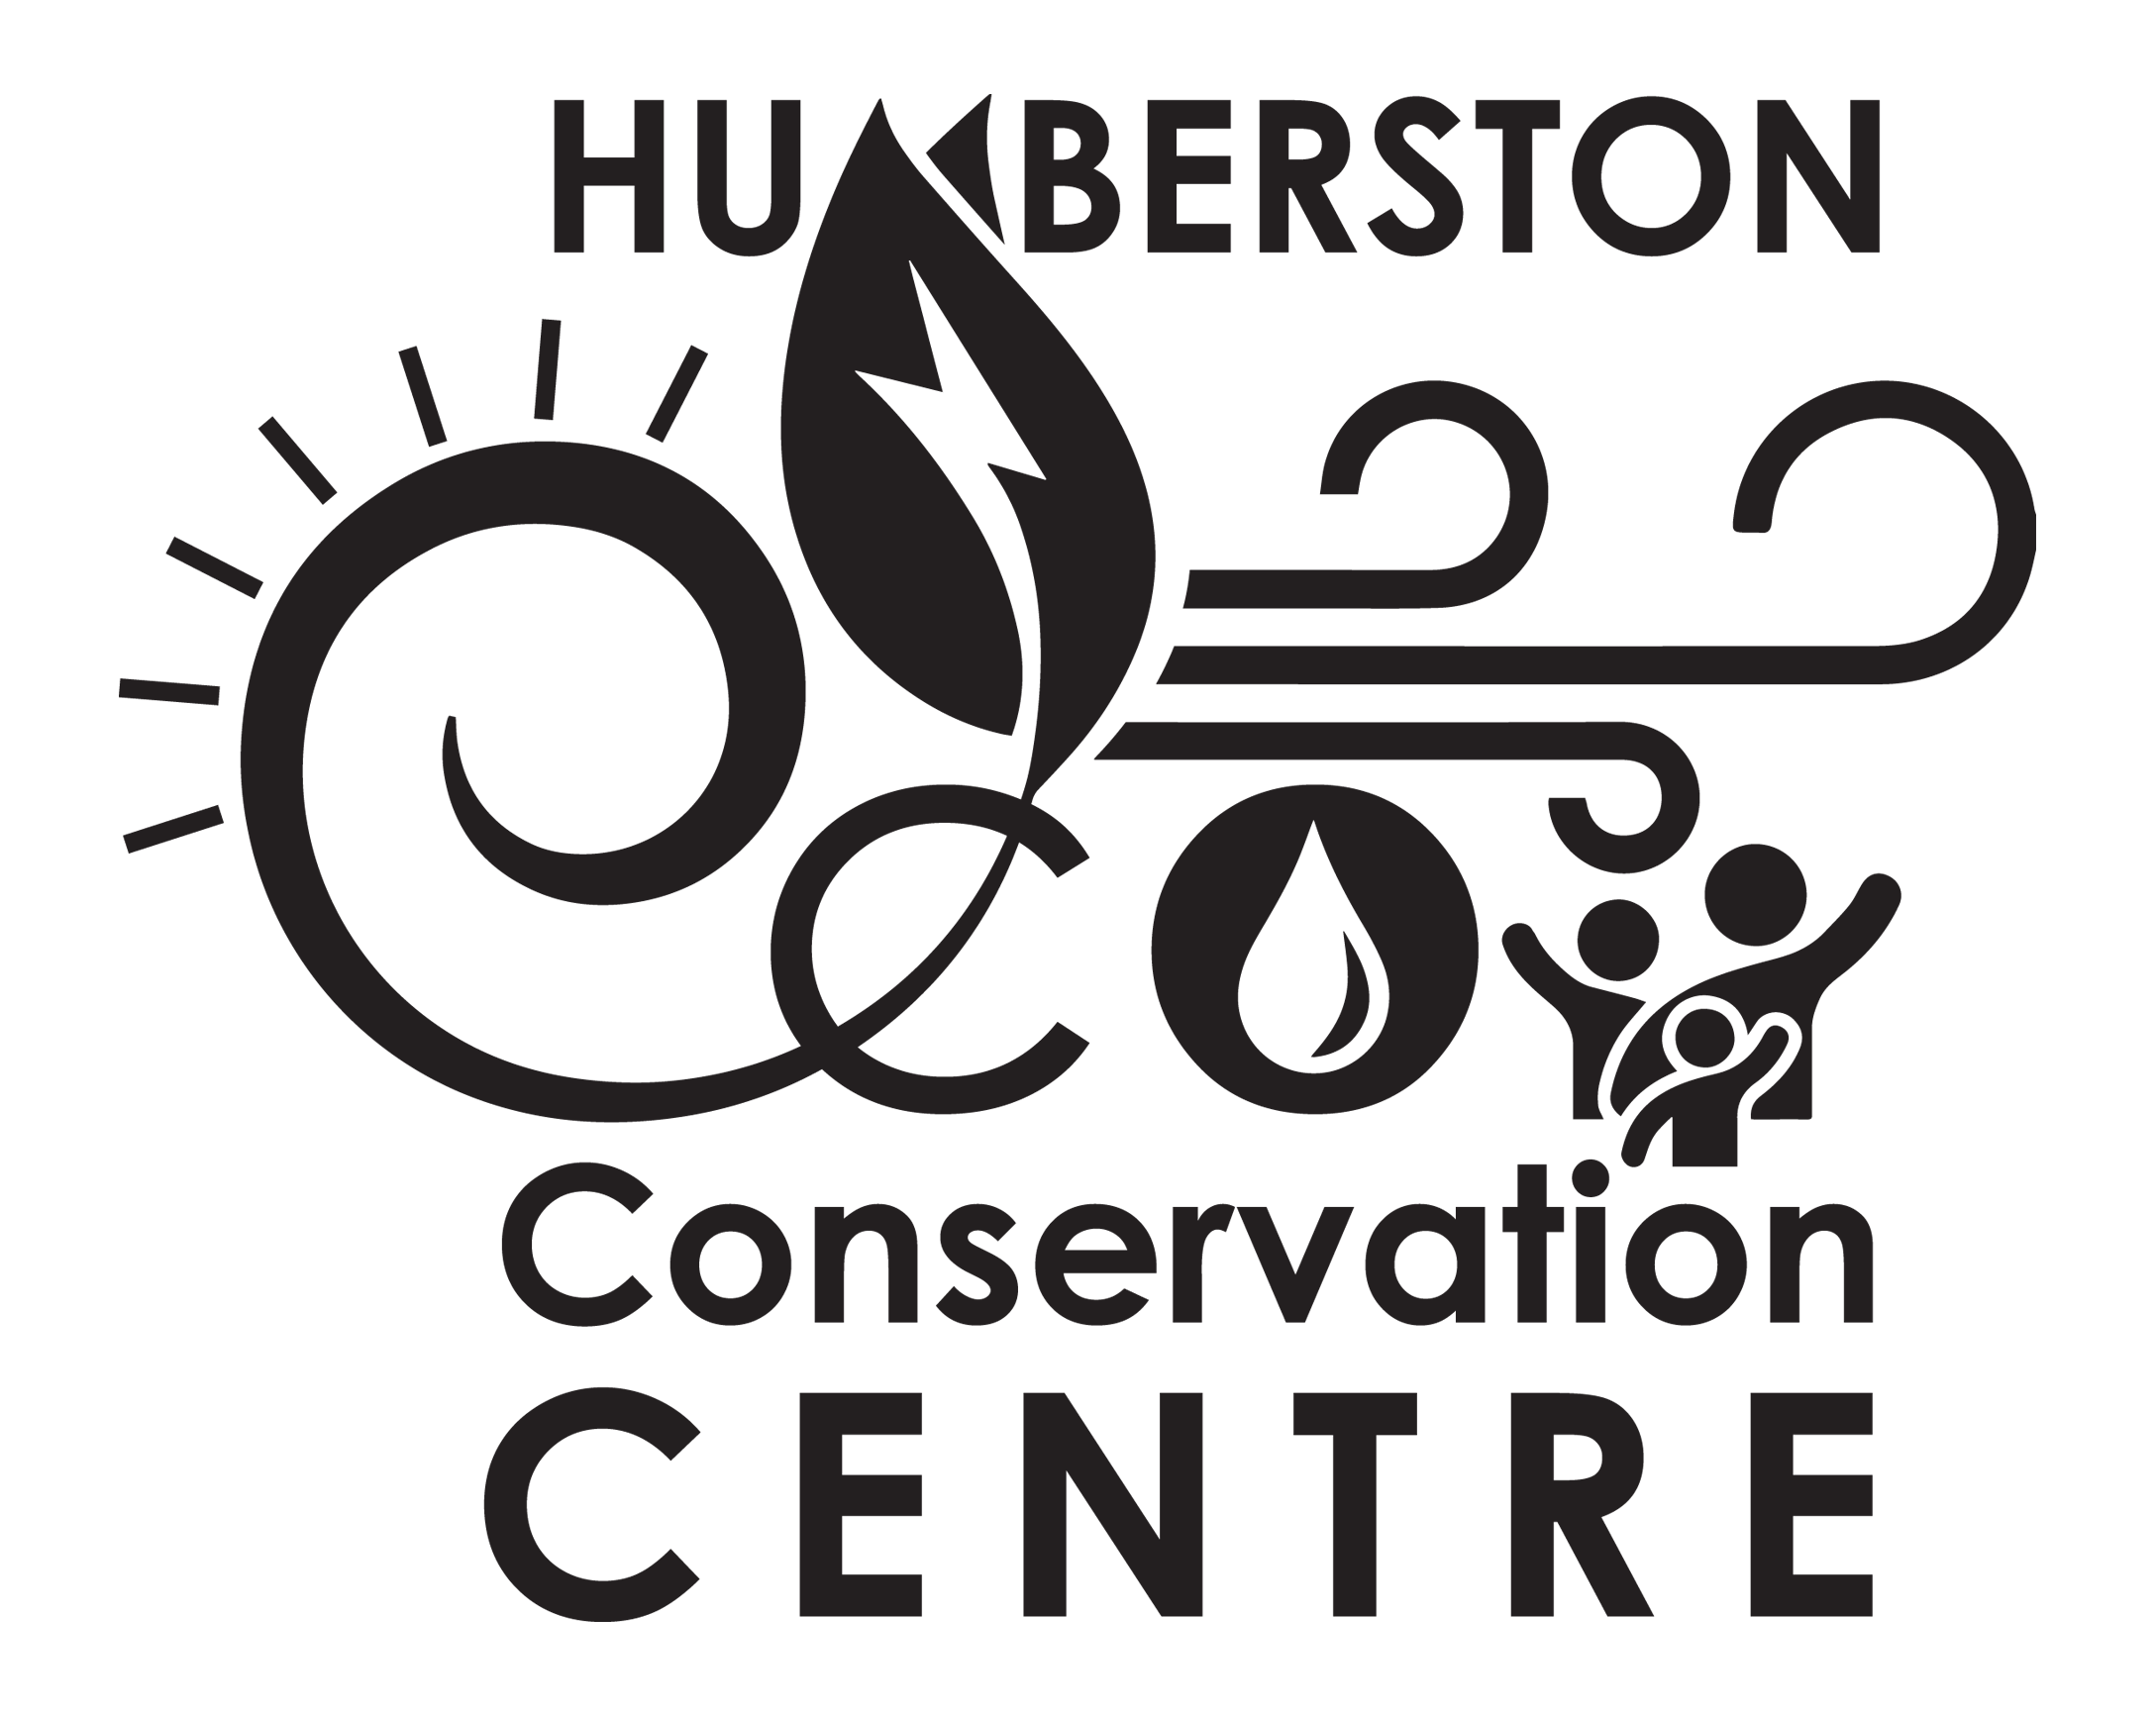 Humberston Eco Conservation Centre